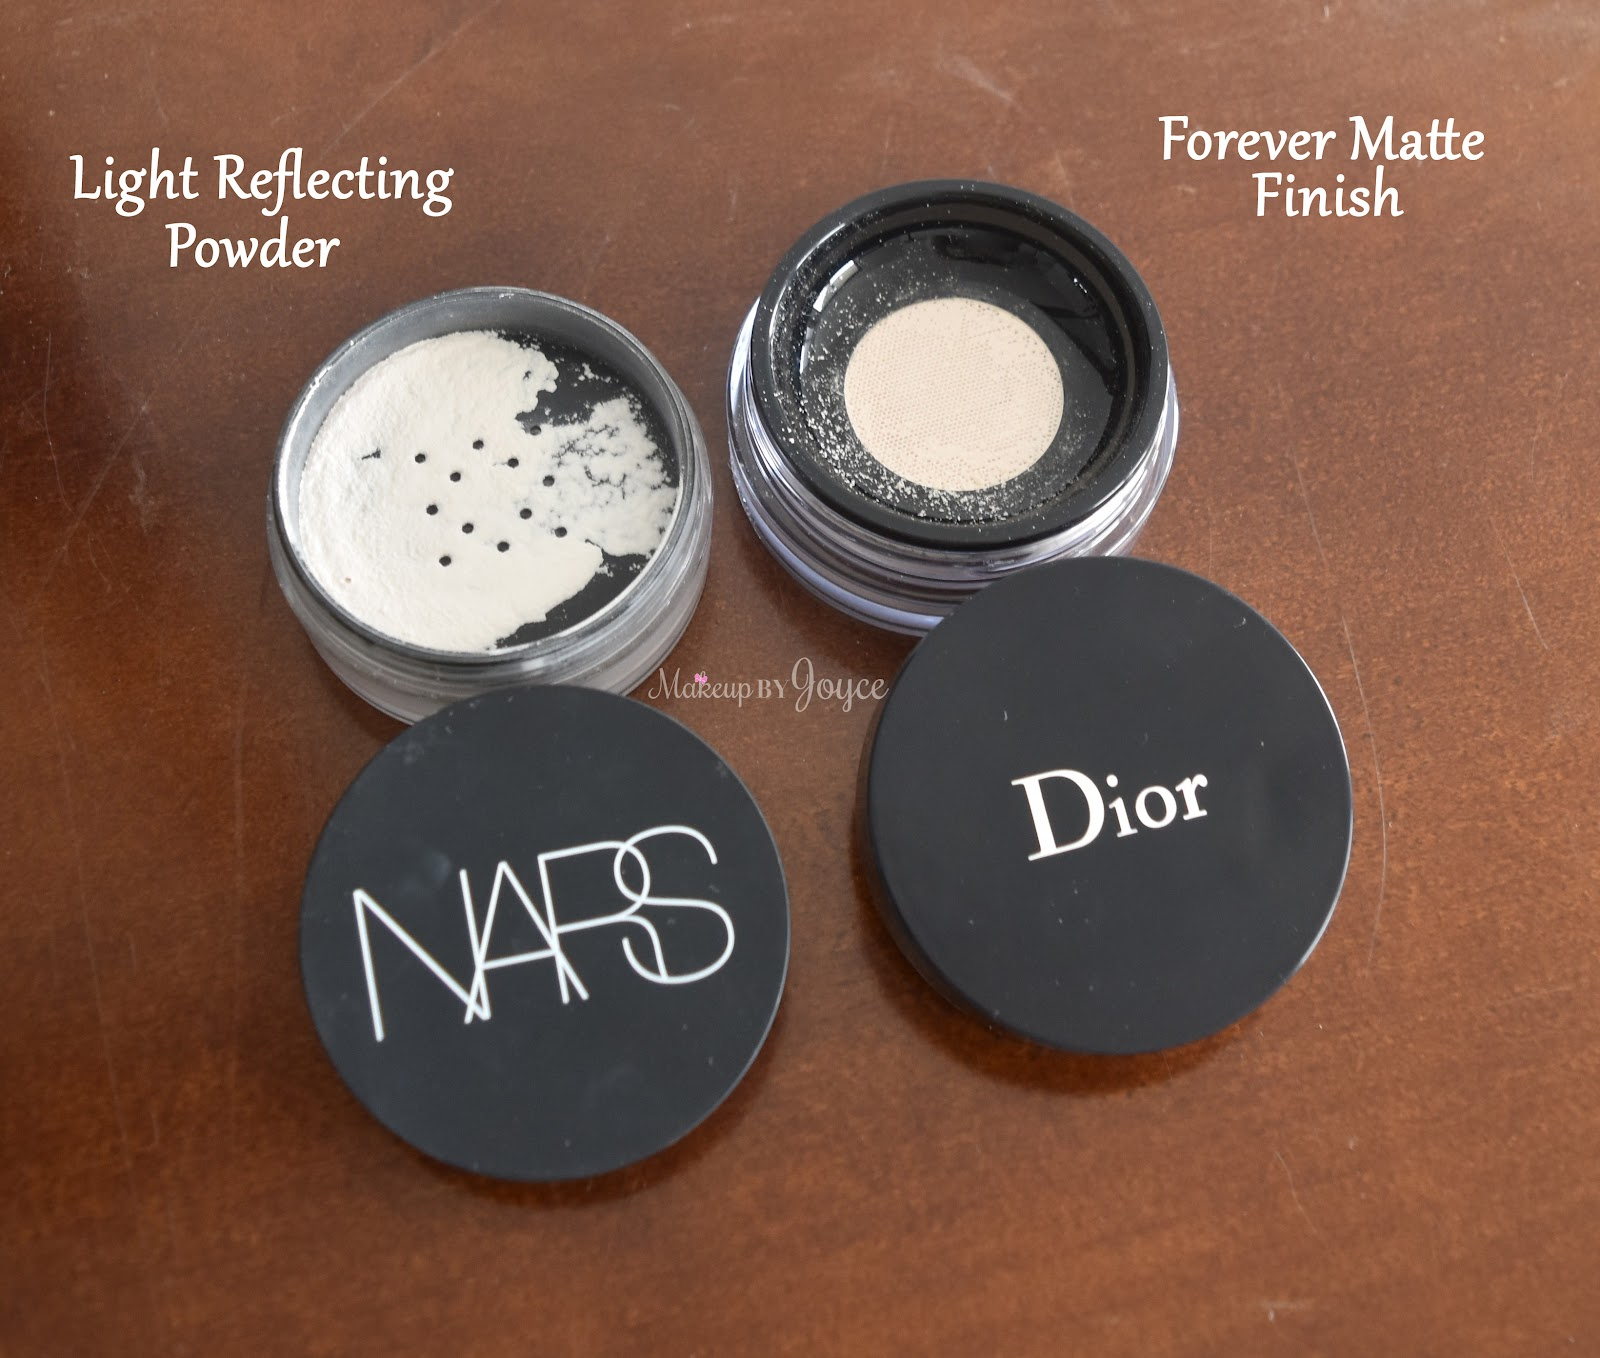 Diorskin Forever & Ever Control Loose Powder by Dior #16